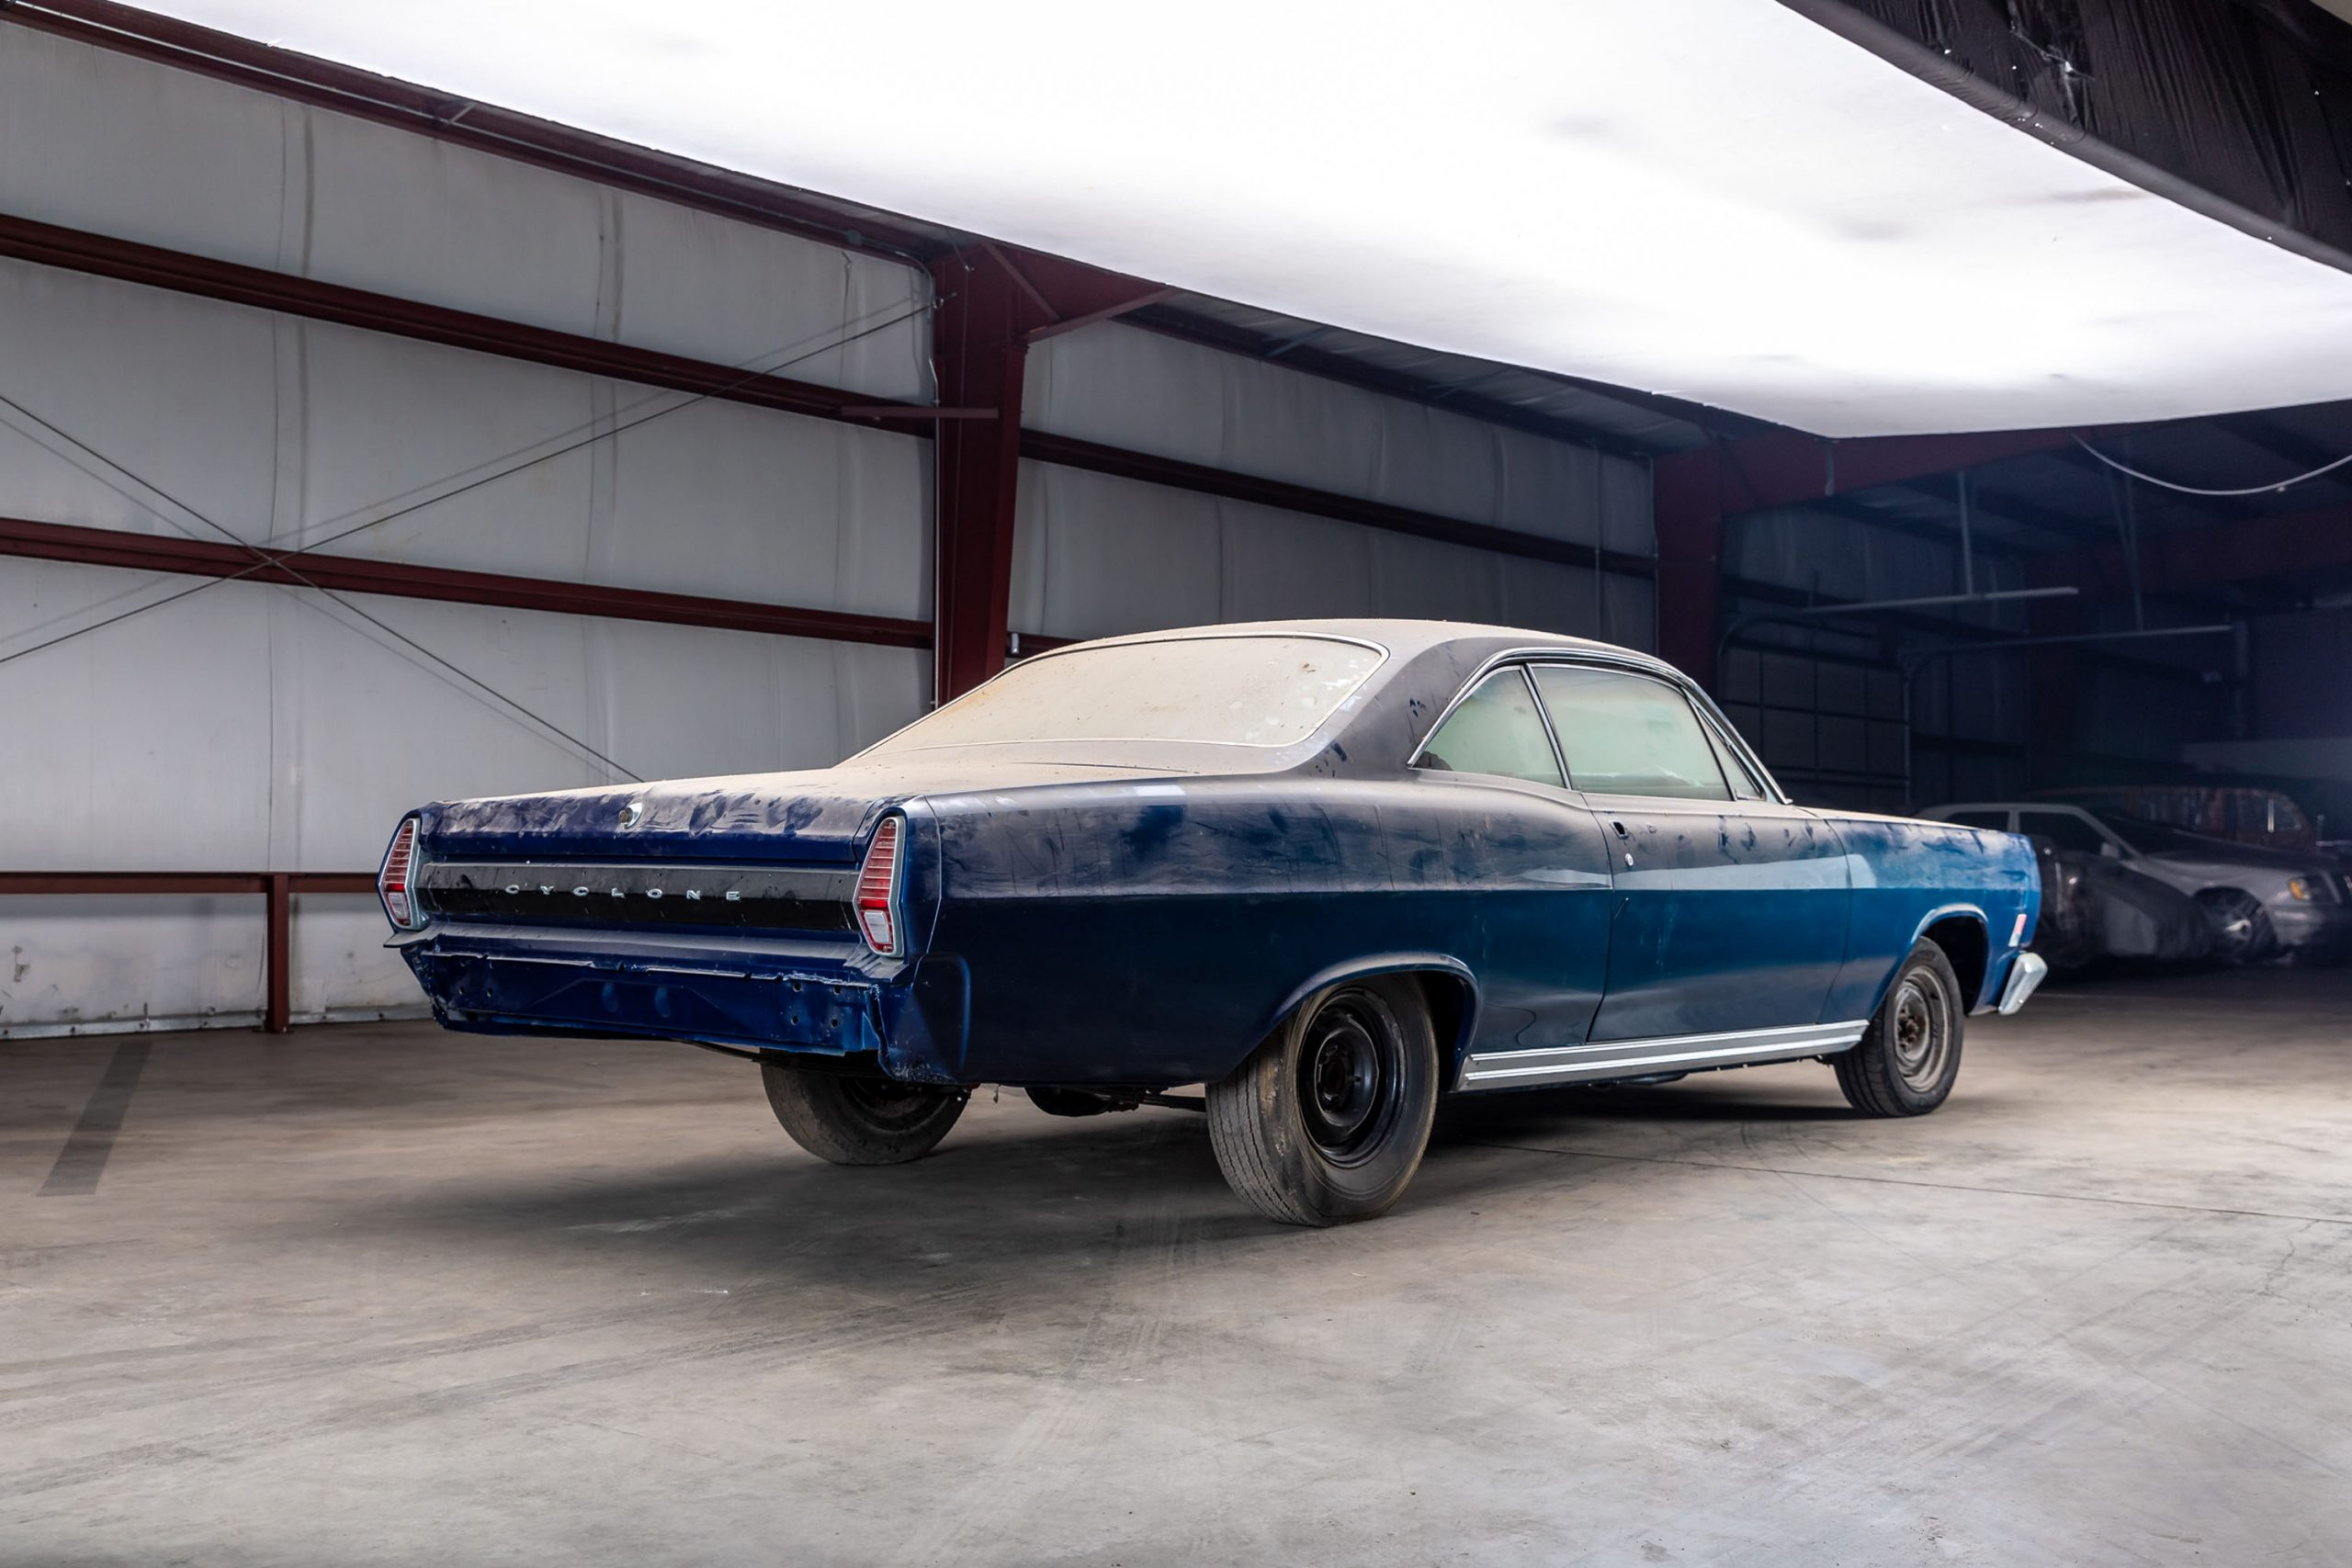 1967 Mercury Comet Cyclone R-Code rear three-quarter